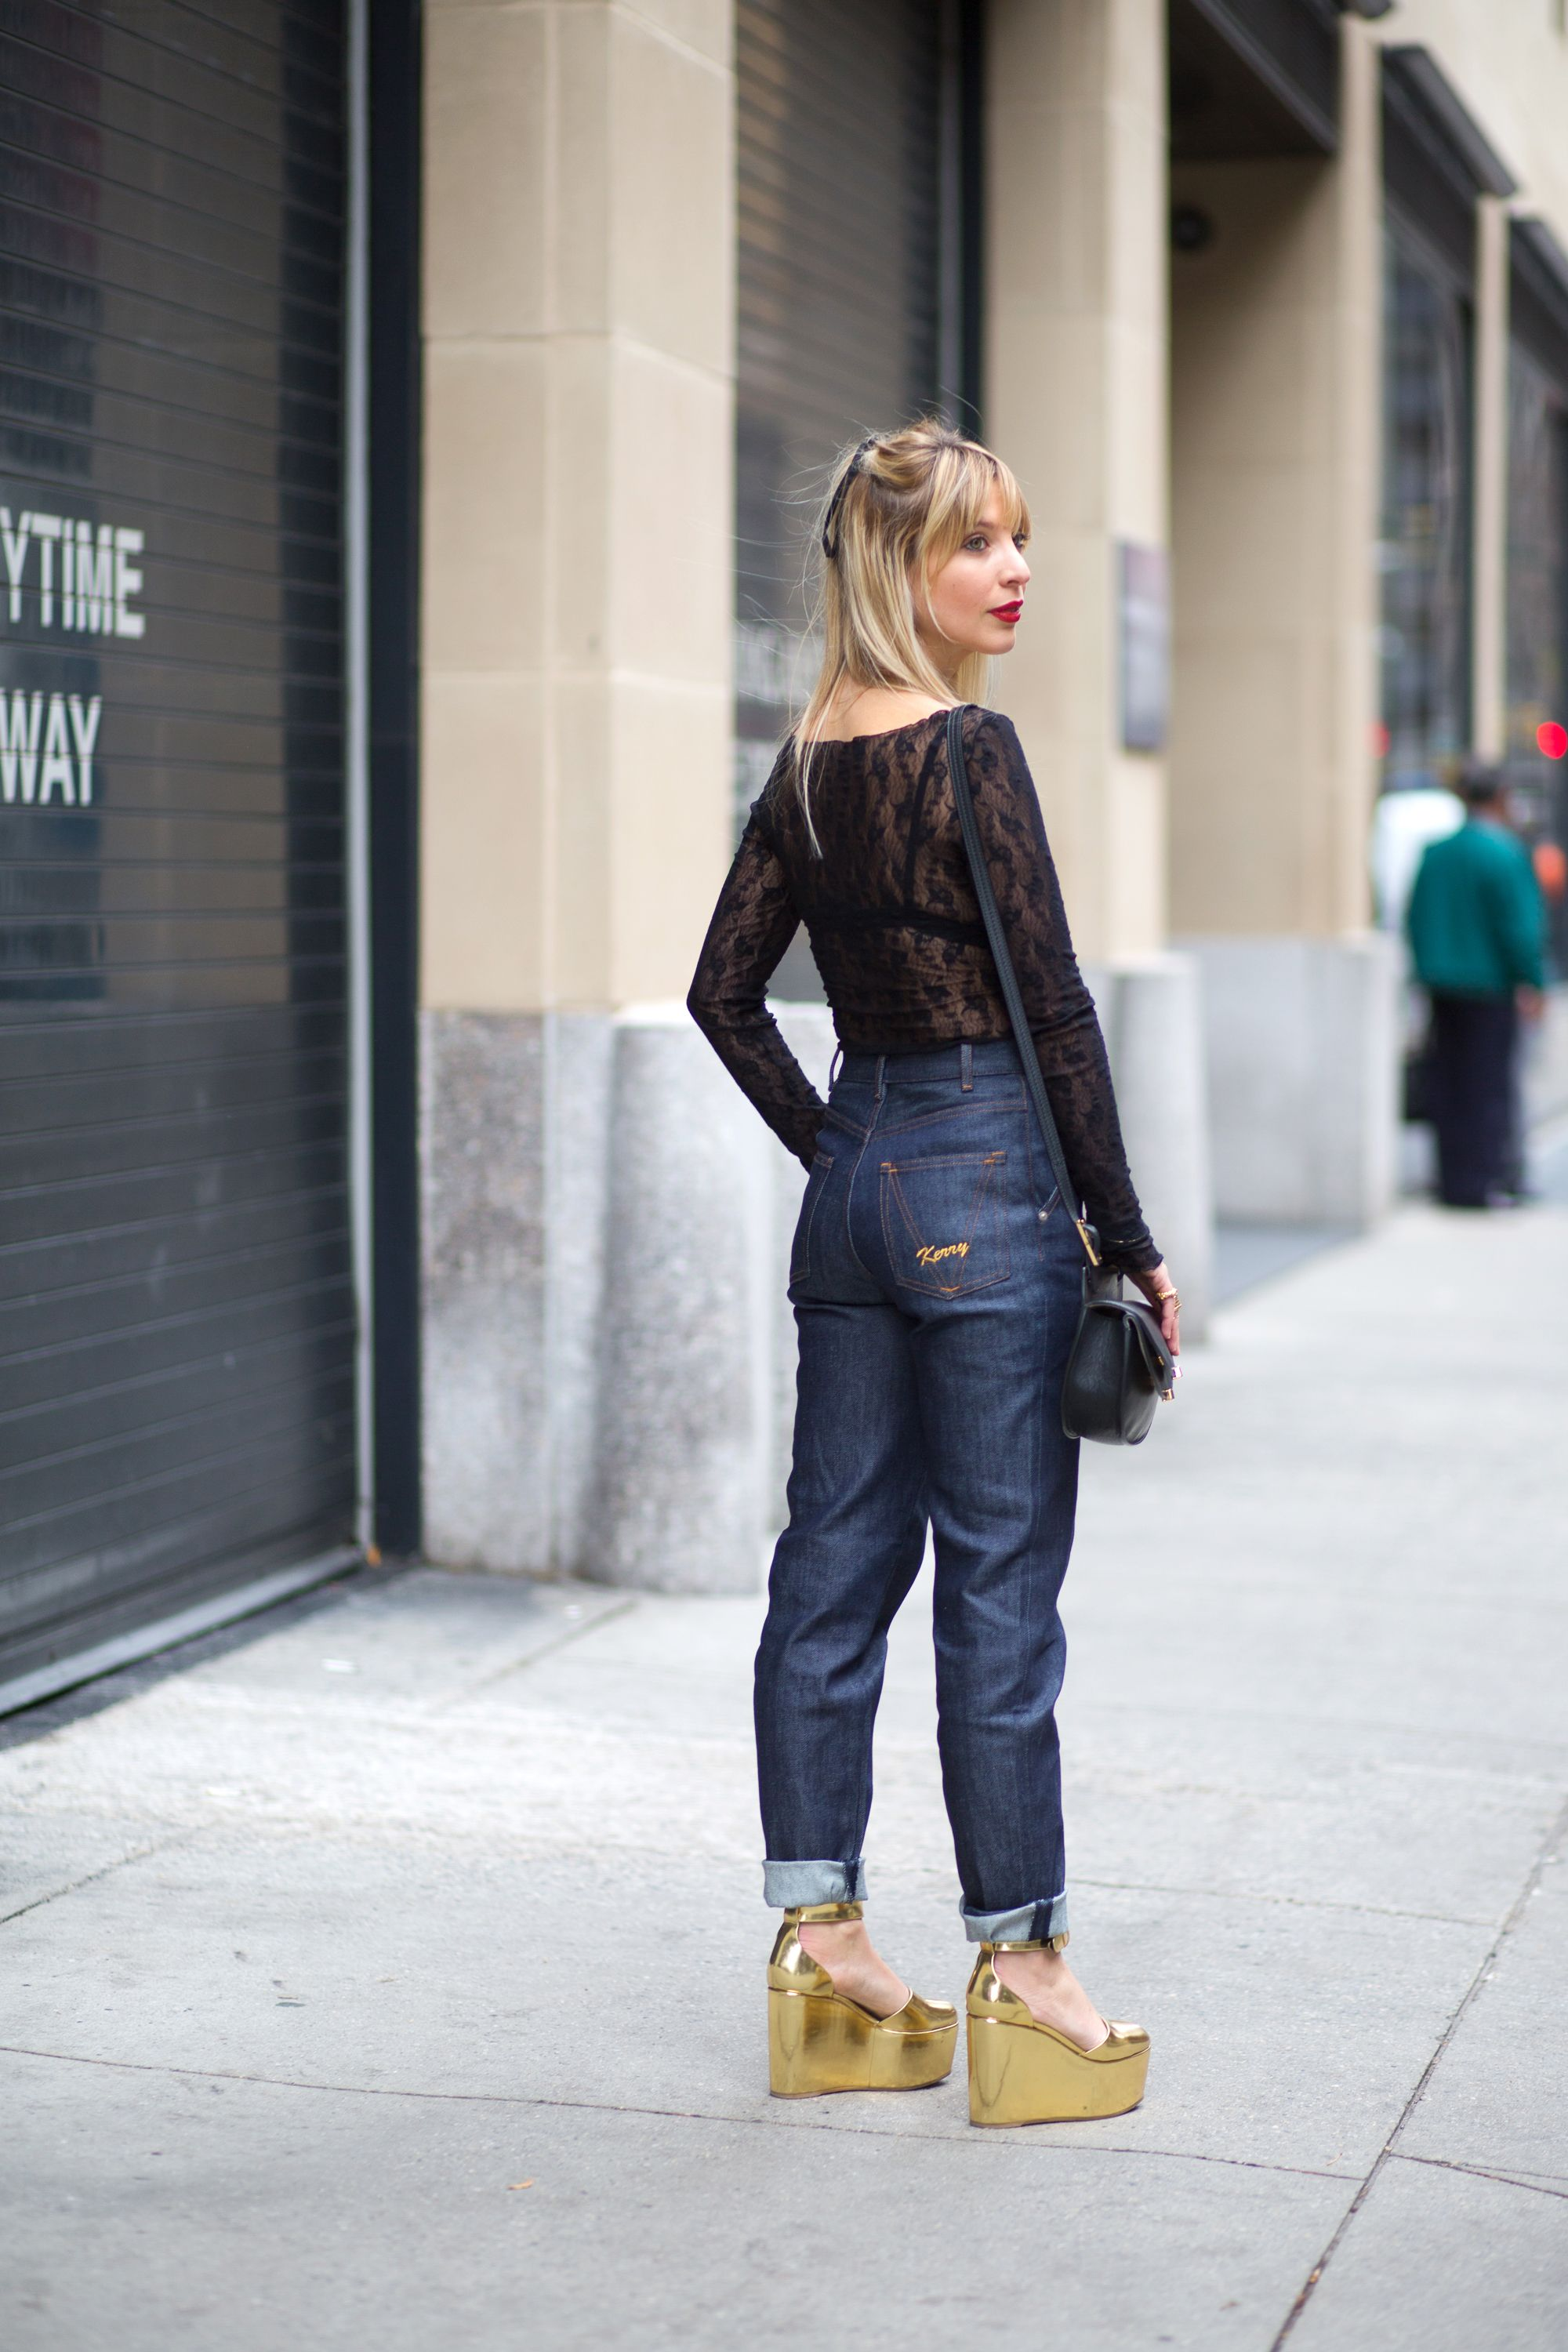 "<p>""These monogrammed Vanessa Seward jeans are a made of a raw, structured denim, so I thought this sheer, lace top would make for a nice contrast.""<em></em></p><p><em>Vanessa Seward jeans, $280, <a href=""http://www.net-a-porter.com/us/en/product/590437/Vanessa_Seward/victoire-high-rise-slim-leg-jeans"" target=""_blank"">net-a-porter.com</a>; Wolford bodysuit, $325, <a href=""http://www.wolfordshop.com/product/boutique/lilie-string-body/79098/bodywear"" target=""_blank"">wolford.com</a>; Celine shoes; Chloe bag, $1,090, <a href=""http://www.stylebop.com"" target=""_blank"">stylebop.com</a>.</em><br></p>"